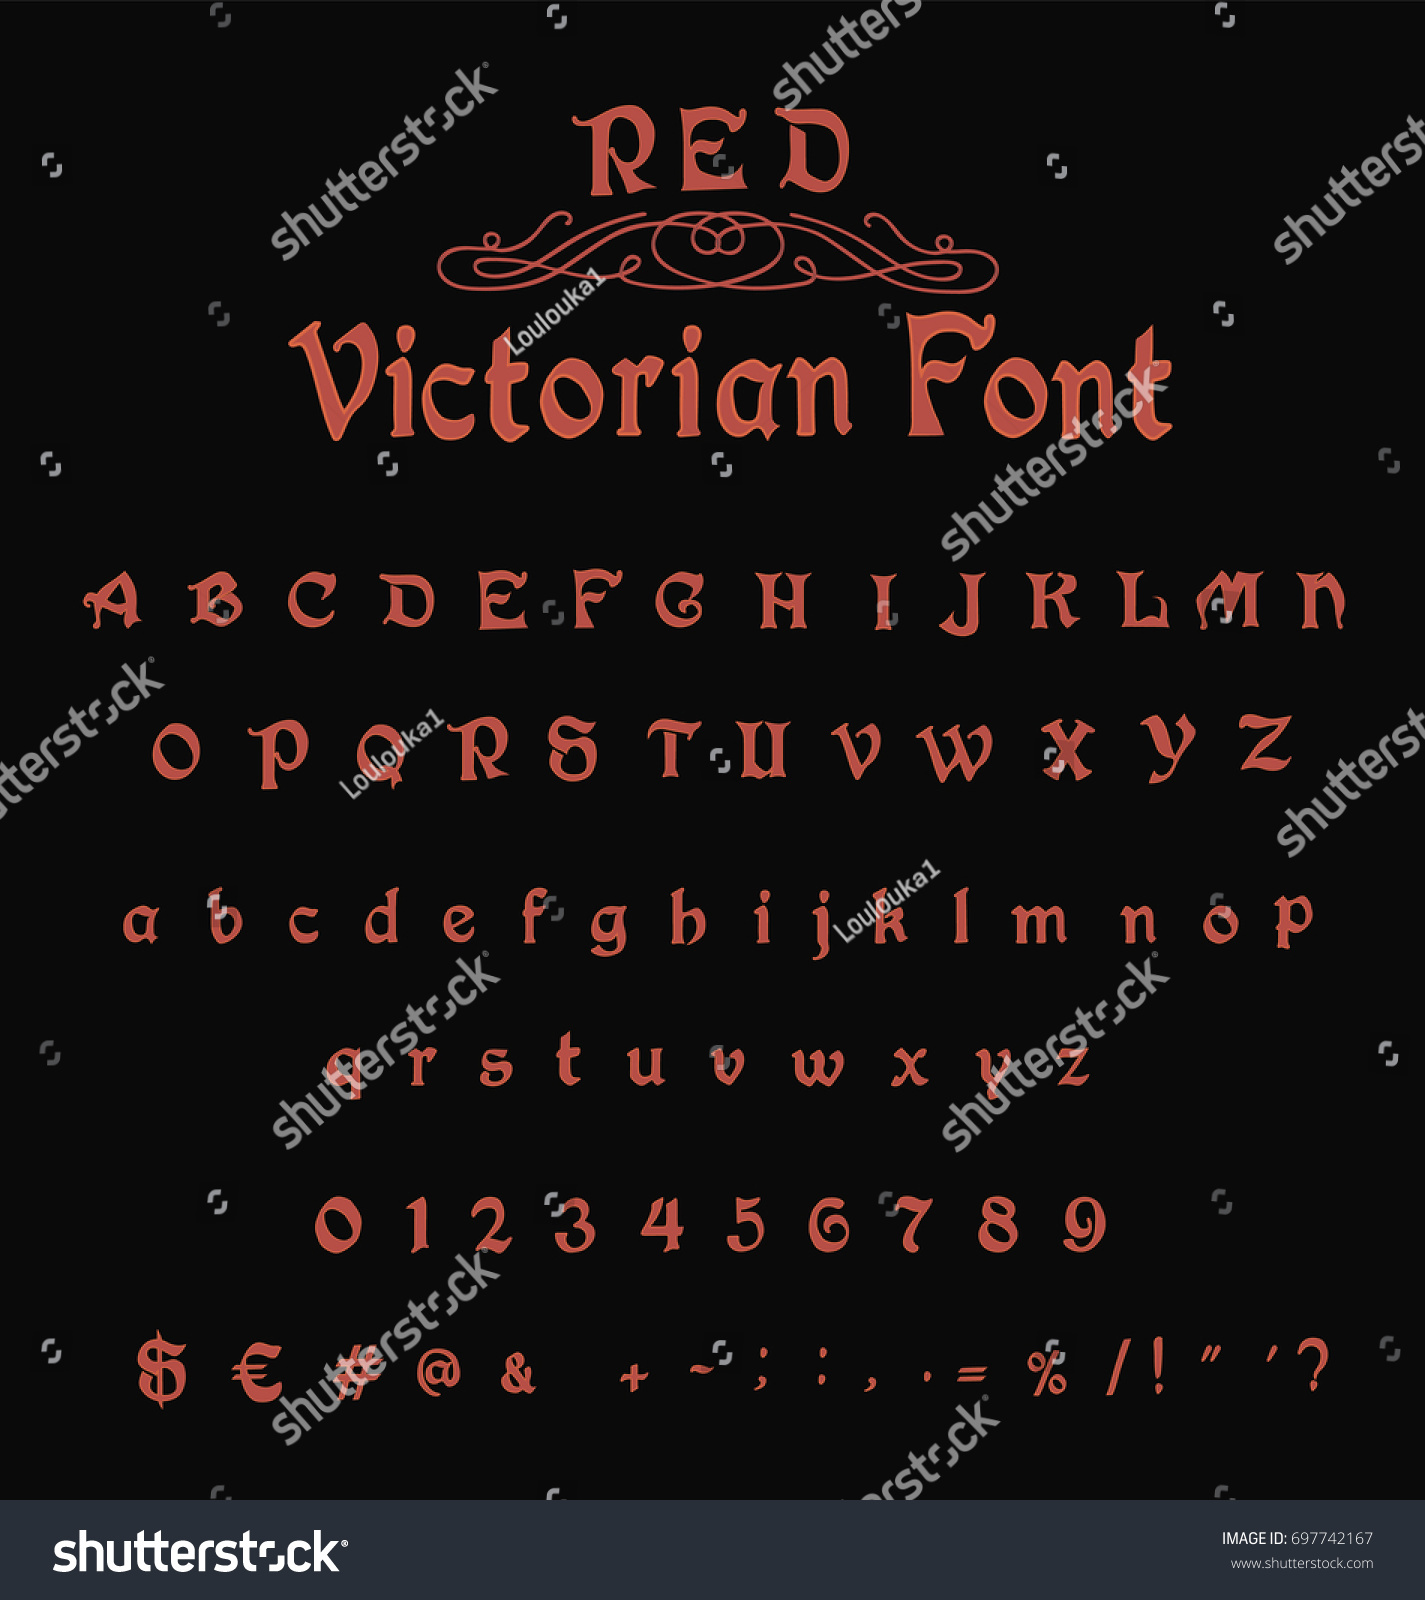 Calligraphy Fonts Victorian Red Victorian Font Gothic Font Old Stock Vector Royalty Free